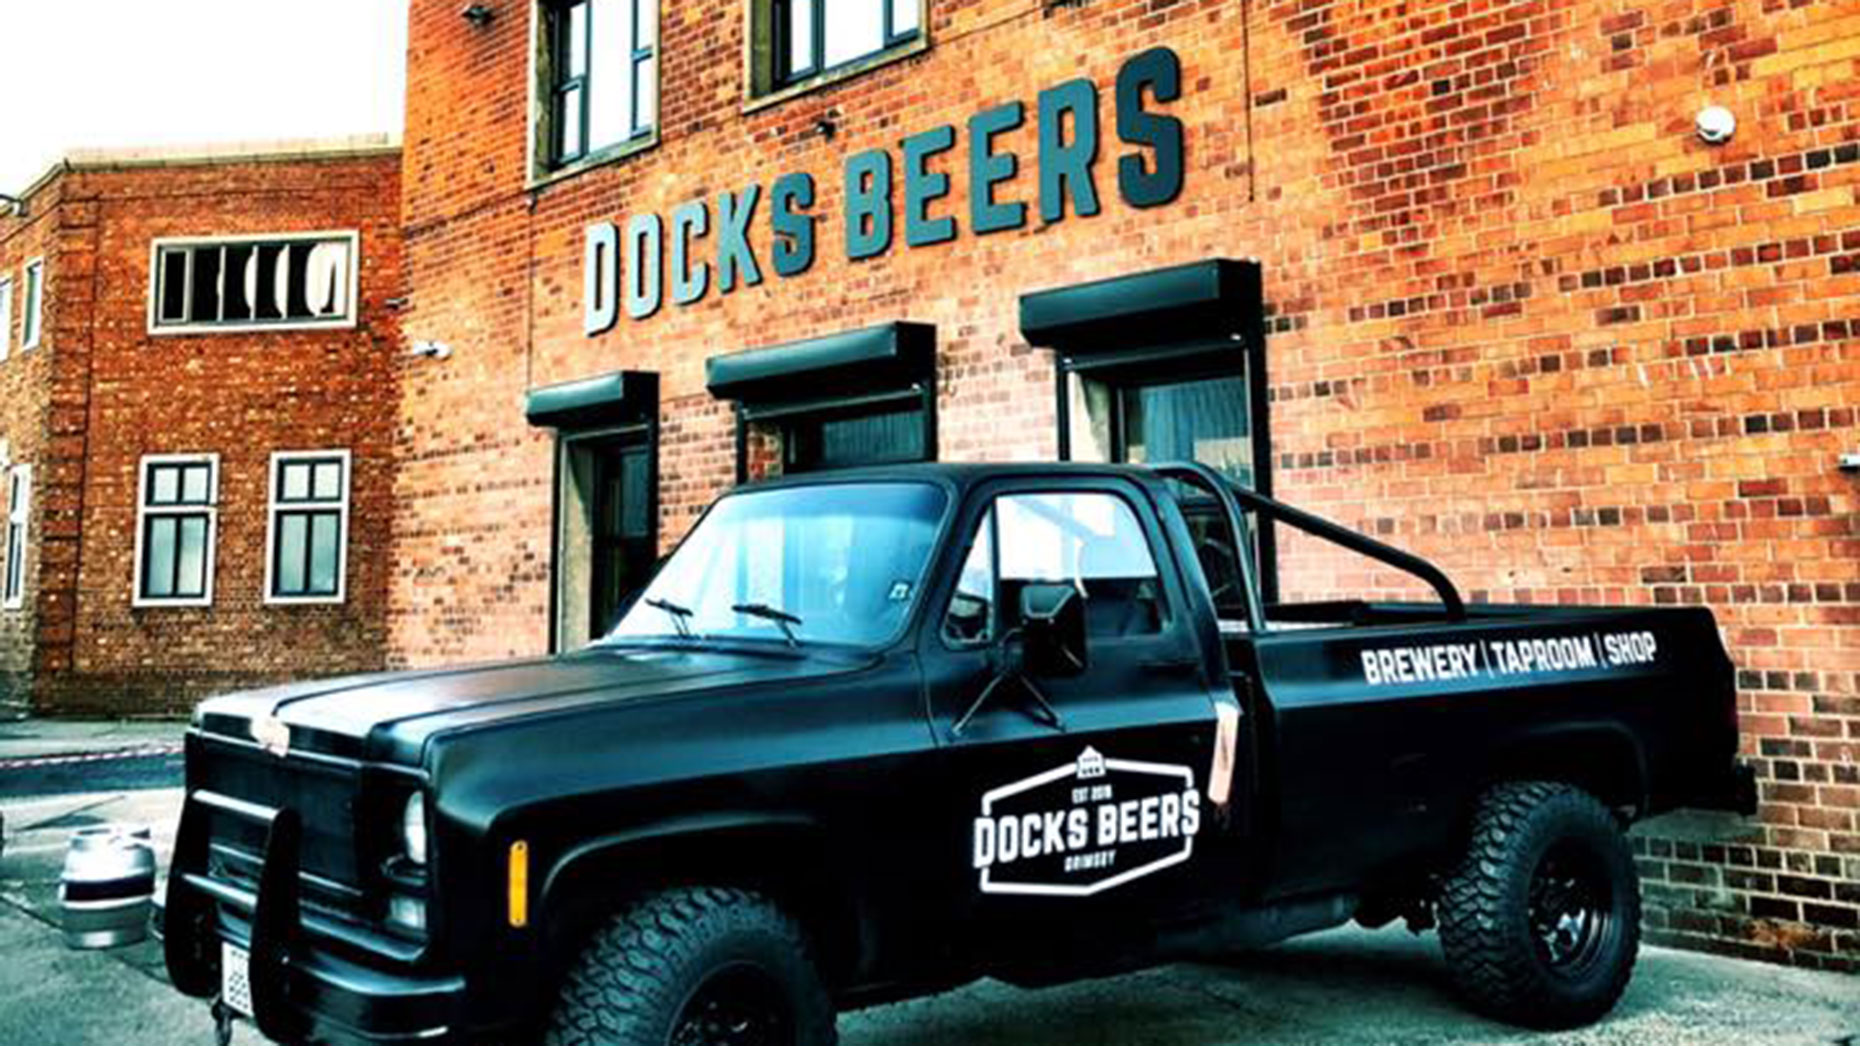 Major investment to see Docks Beers launch new music, comedy and ...